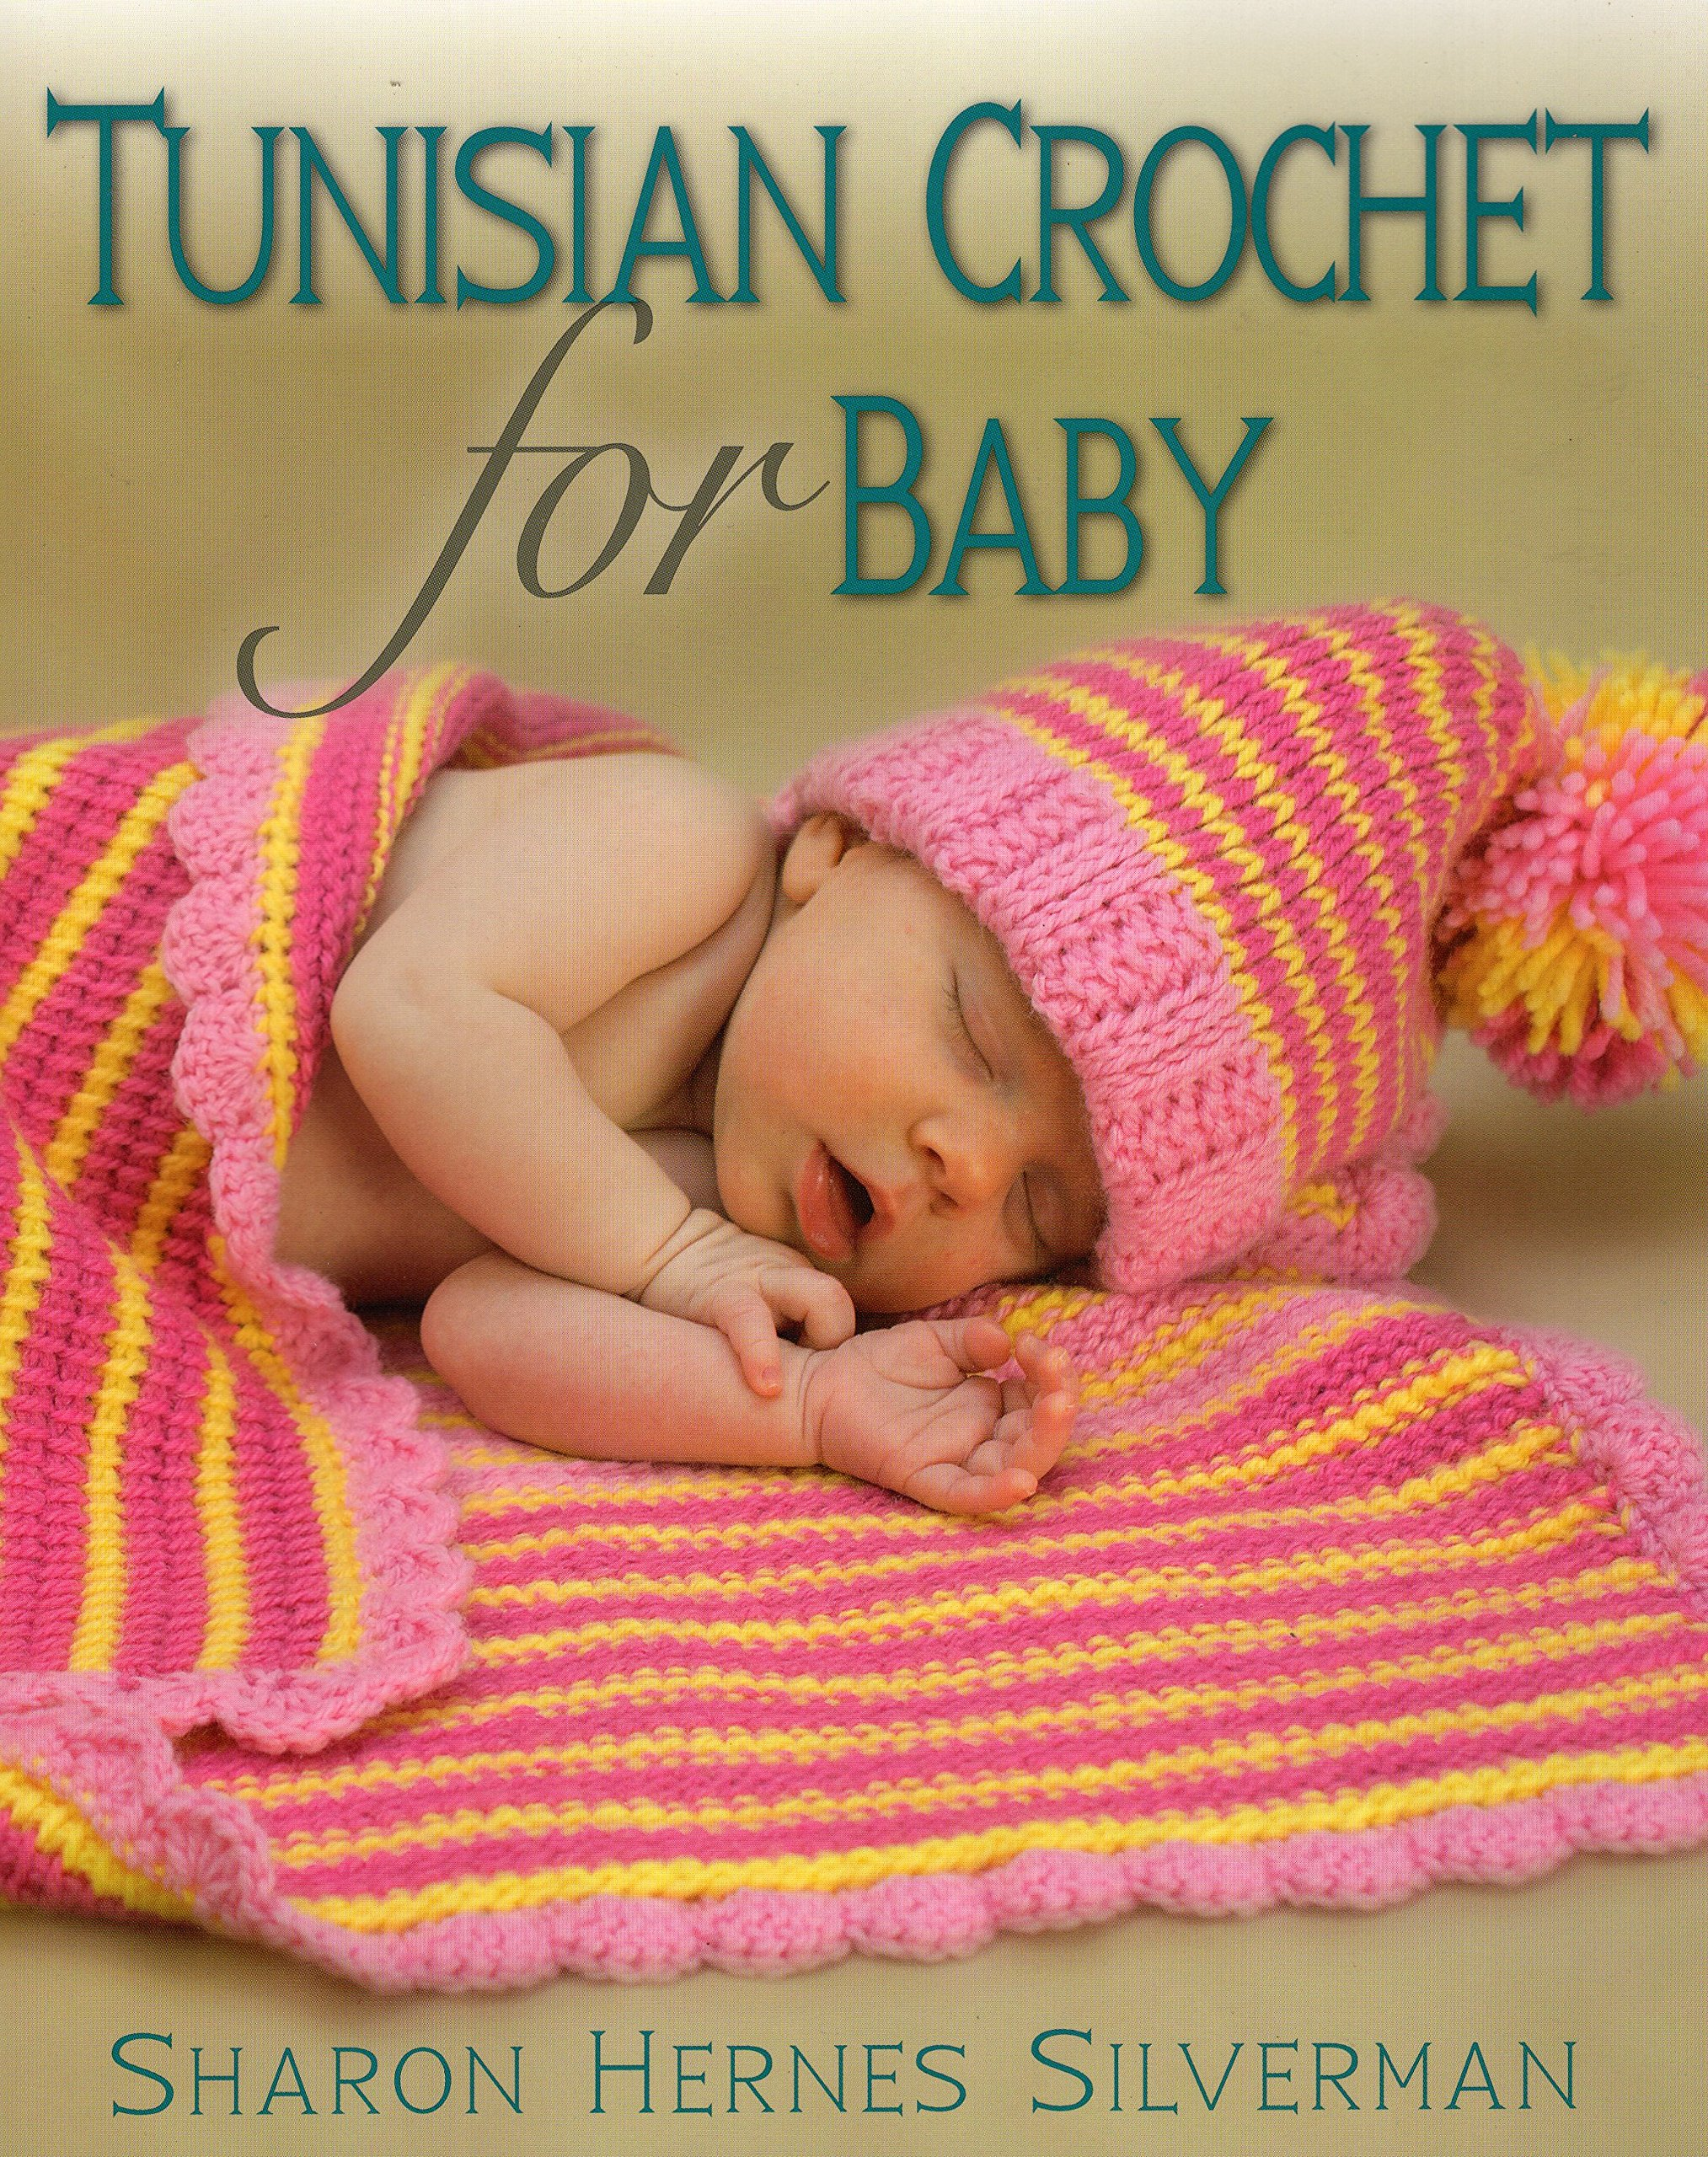 Tunisian Crochet for Baby: Sharon Hernes Silverman: 0499991711345 ...